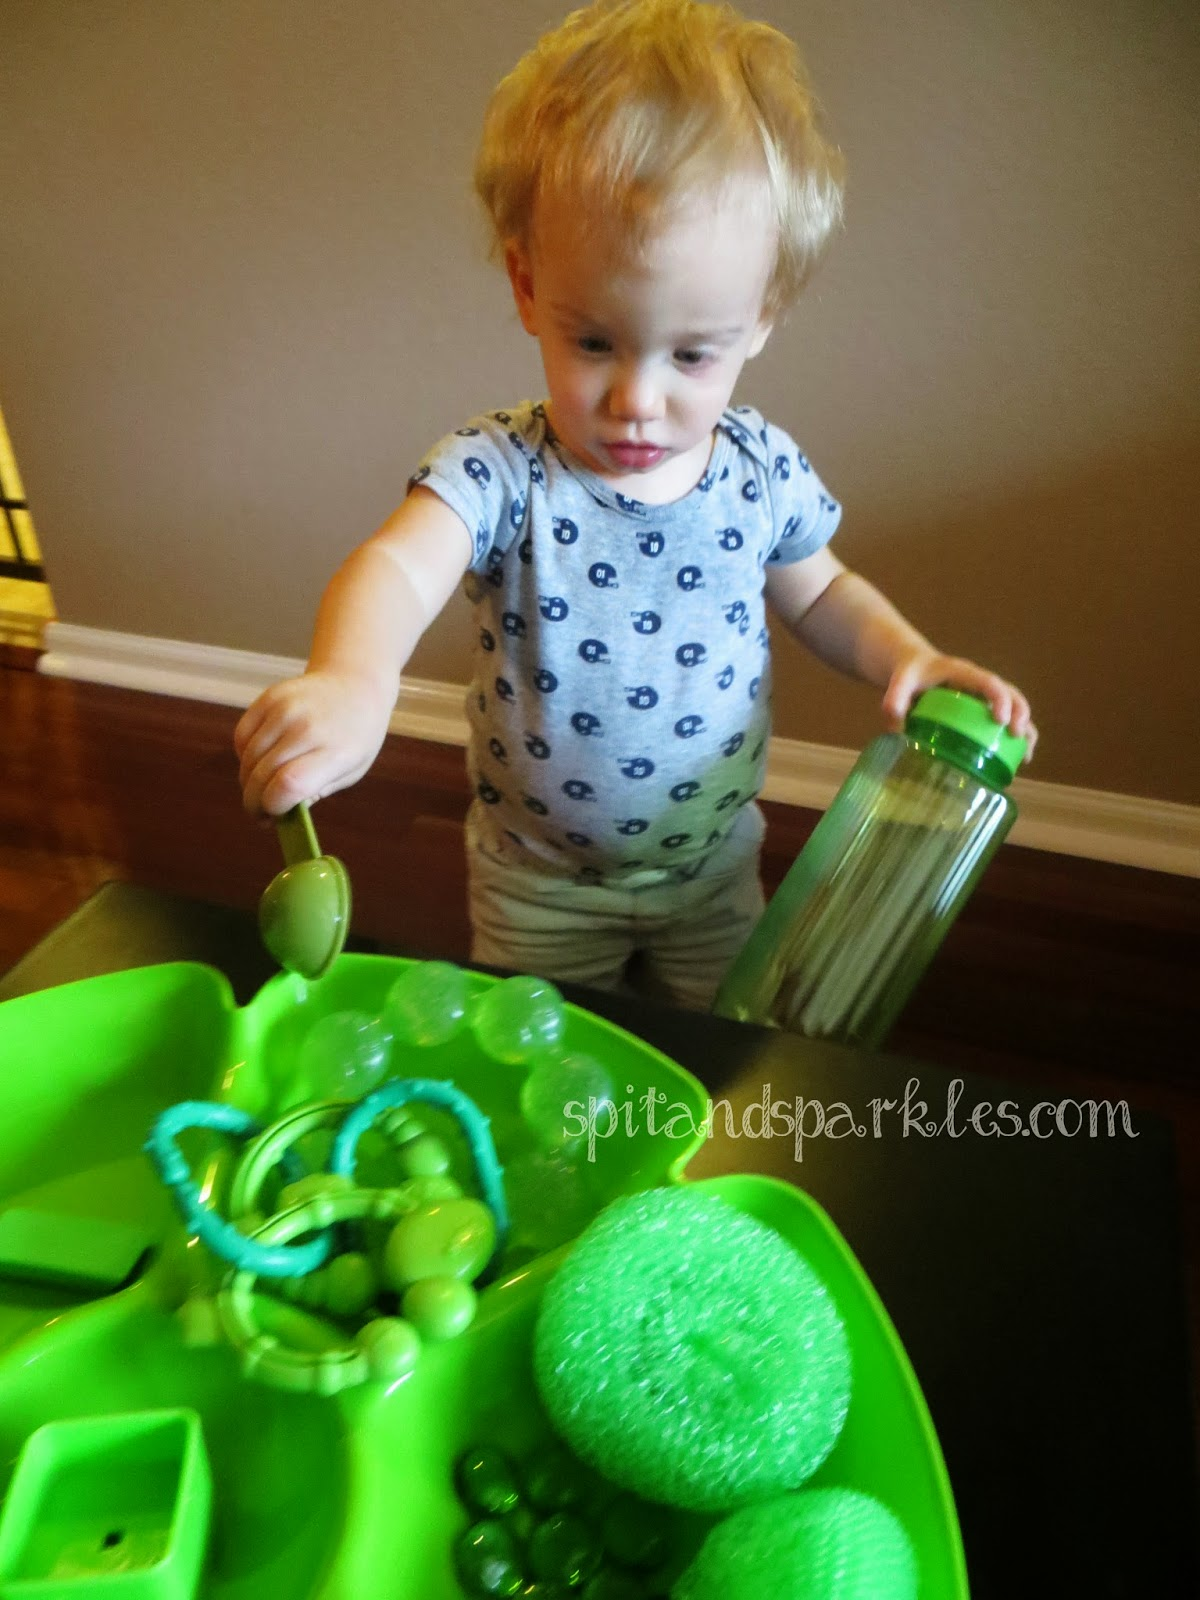 Find items around your home that are green for a color-themed sensory tray. #totschool #homeschool #earlylearning #StPatricksDay